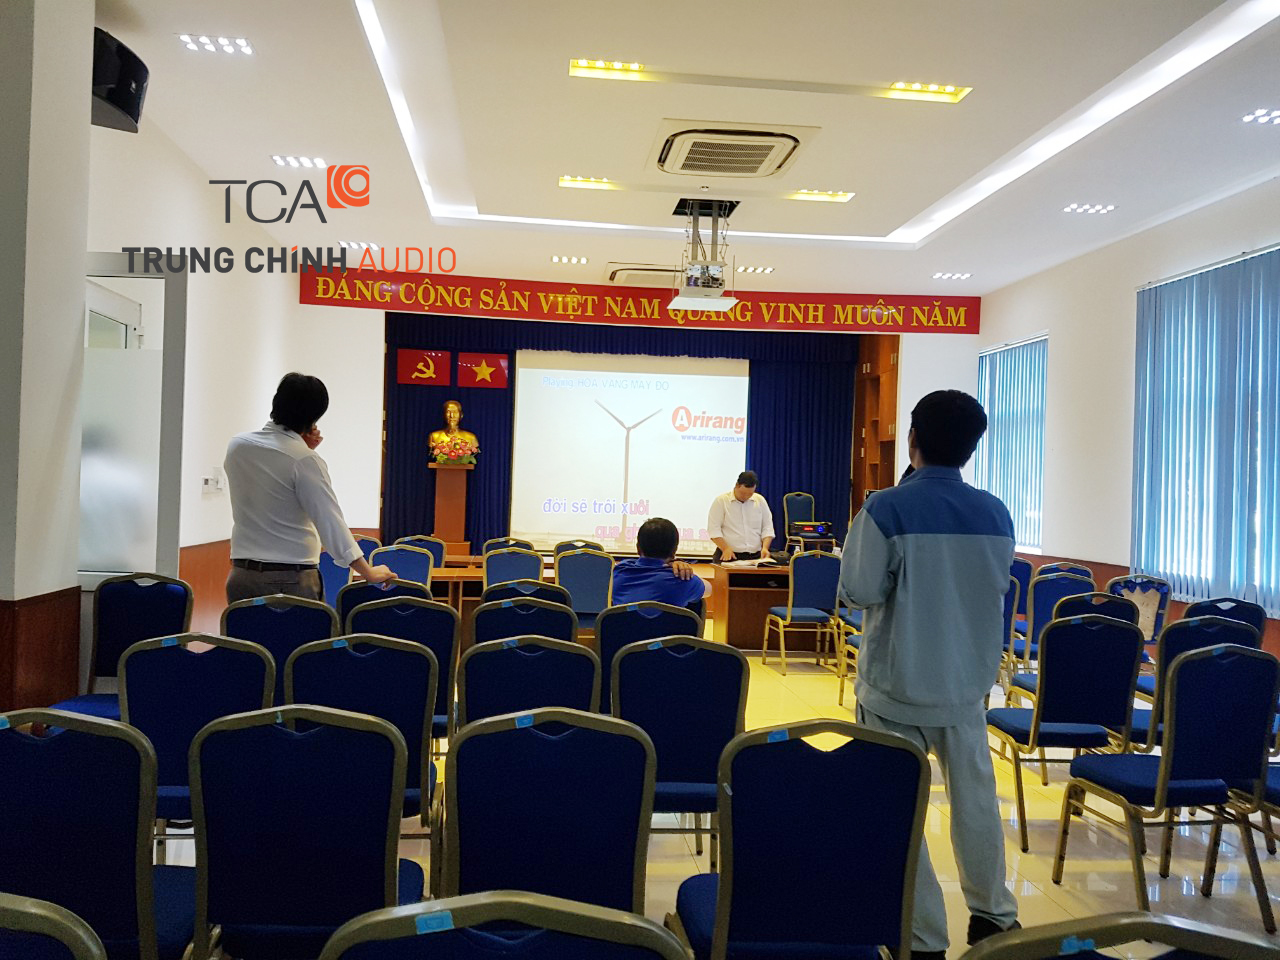 tca-lap-dat-am-thanh-nha-may-nuoc-sach-quan-12-005